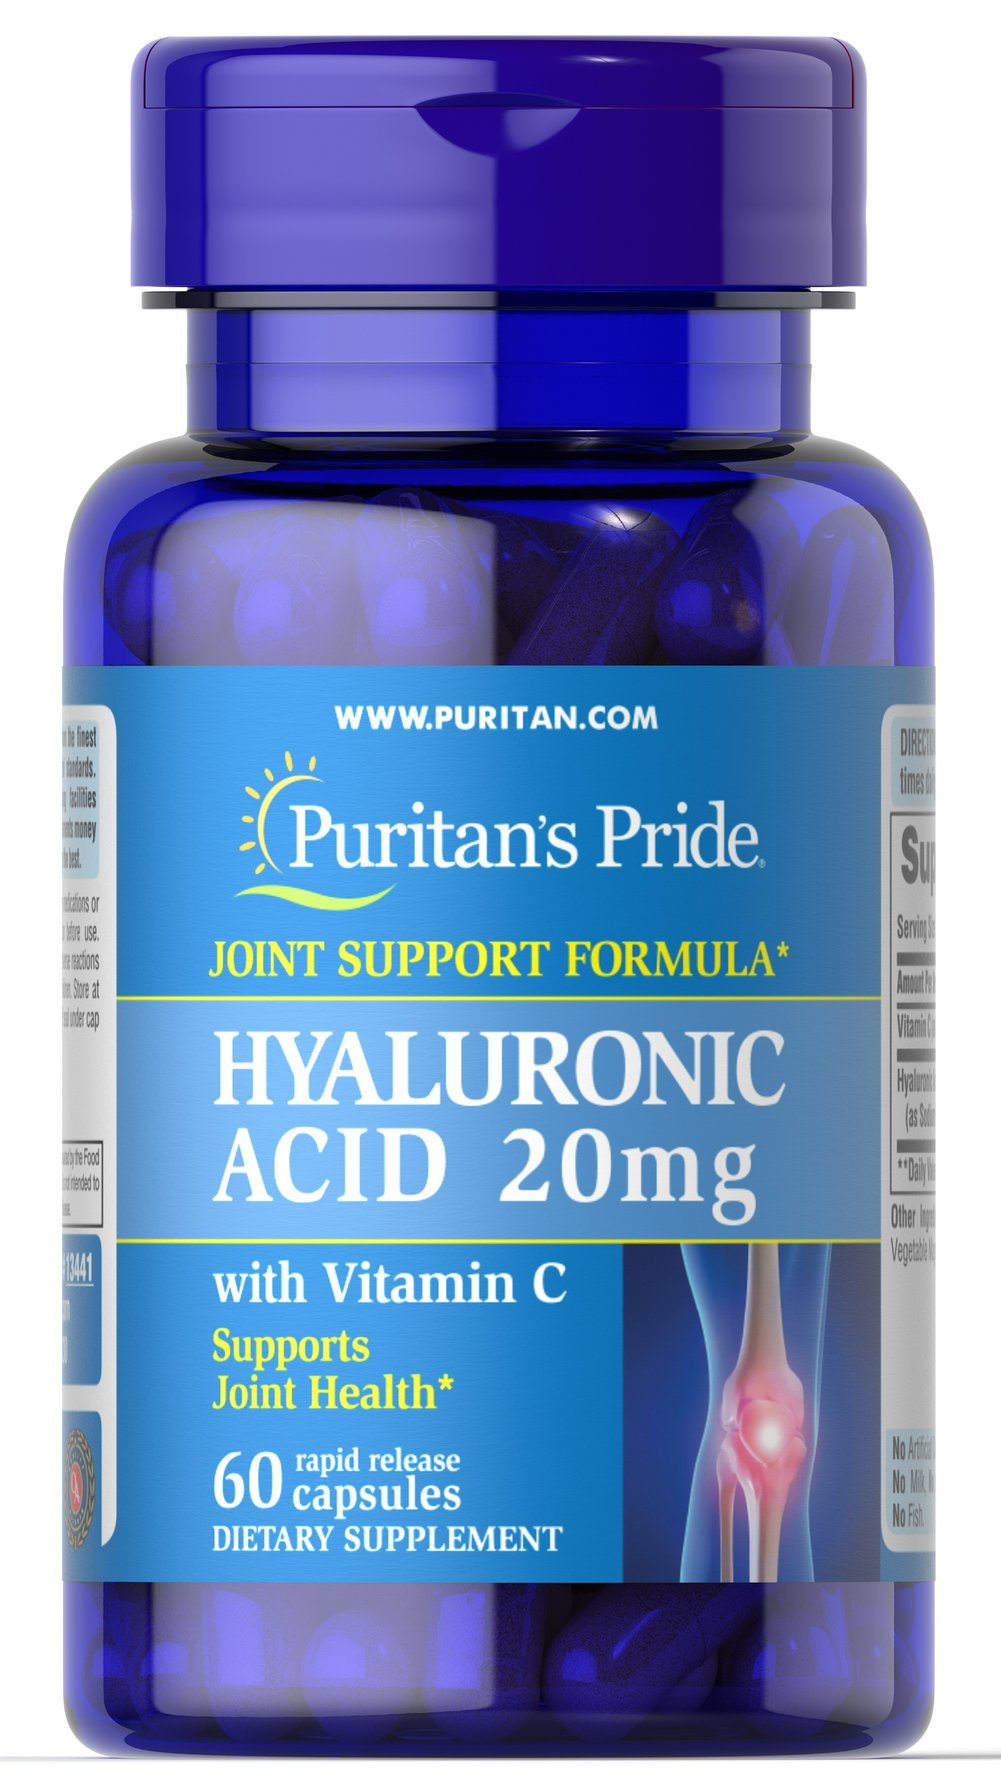 what products have hyaluronic acid